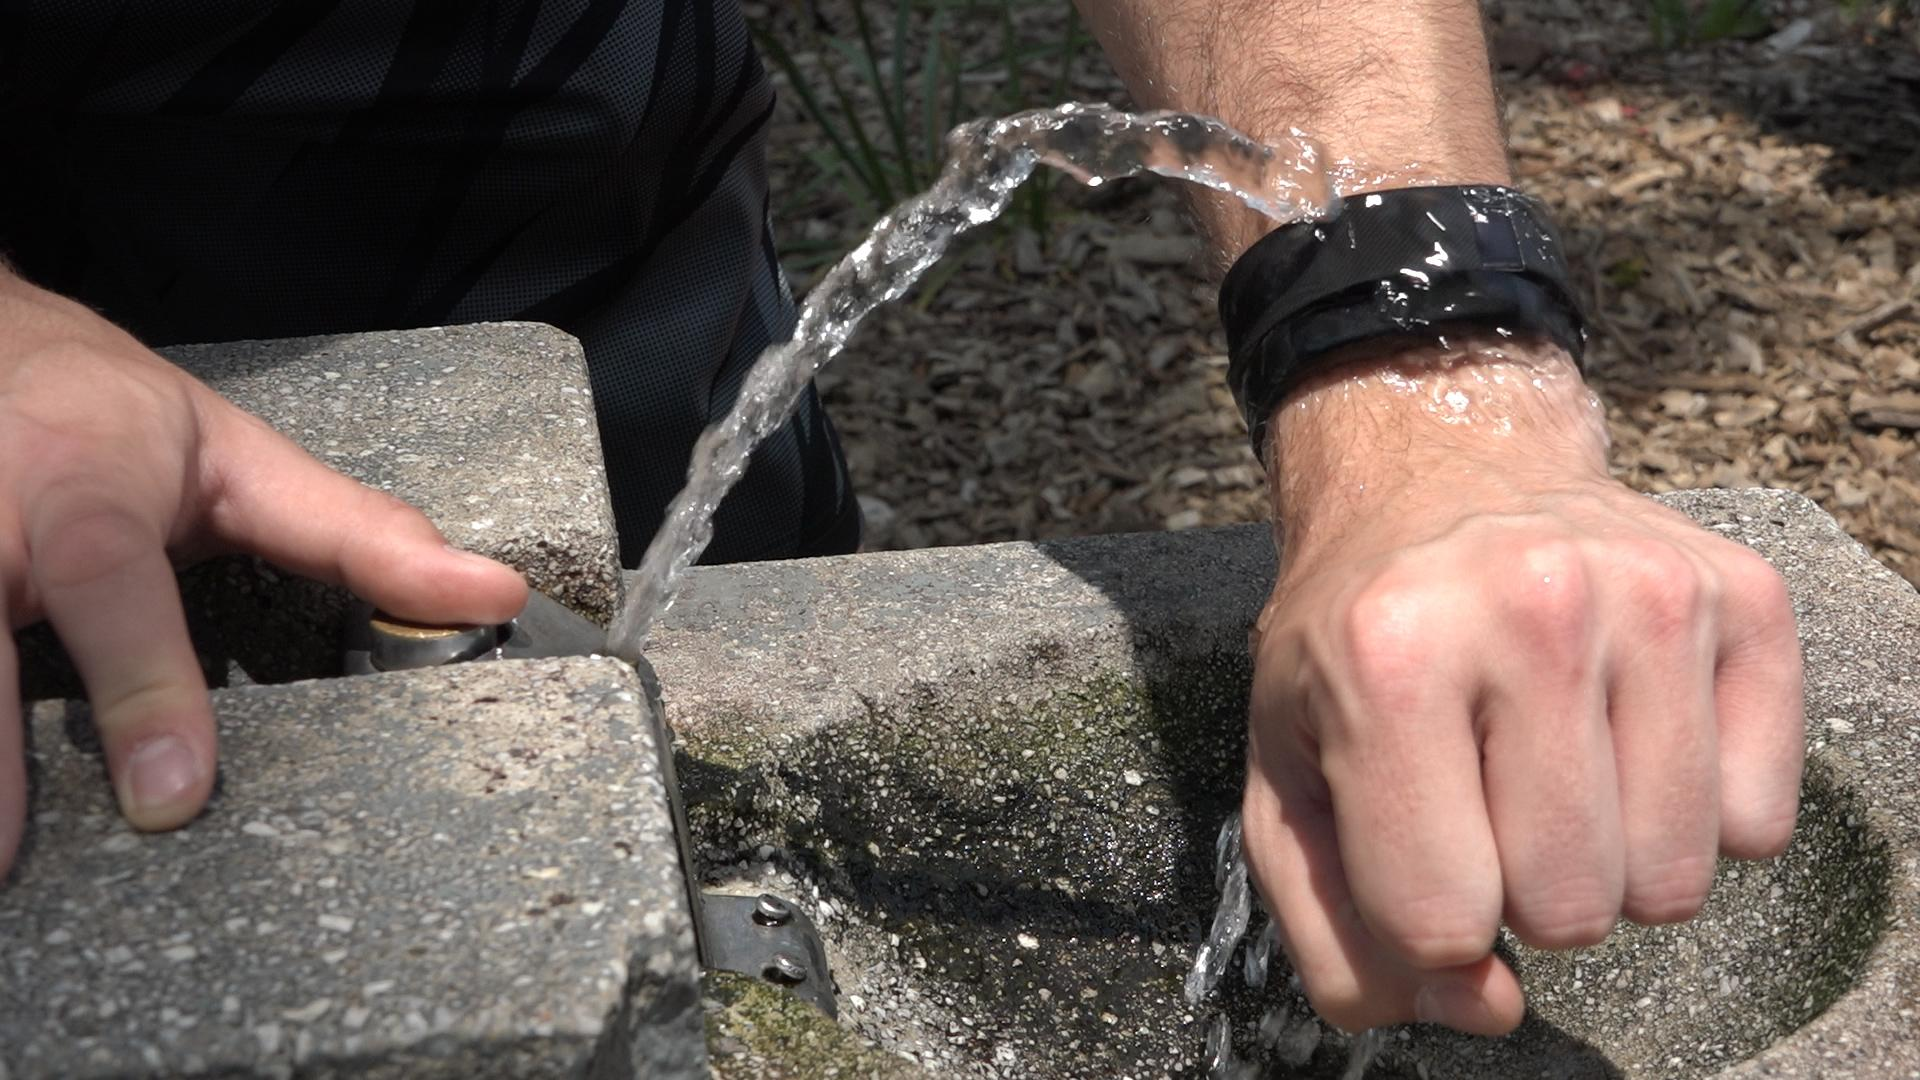 Fitbit Charge & Jawbone UP2 Water